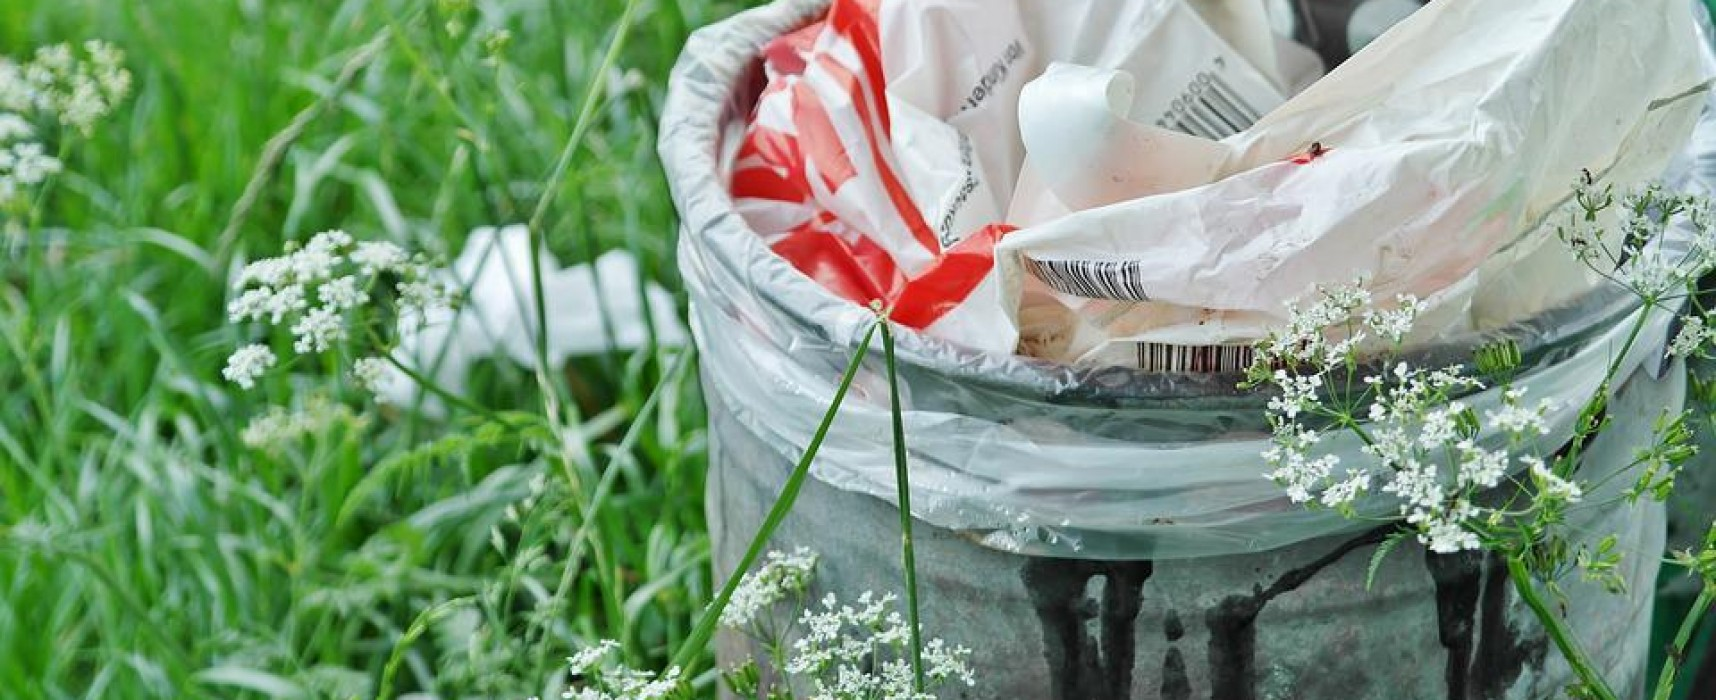 These Tips Help Make Recycling Easier for Kids to Understand